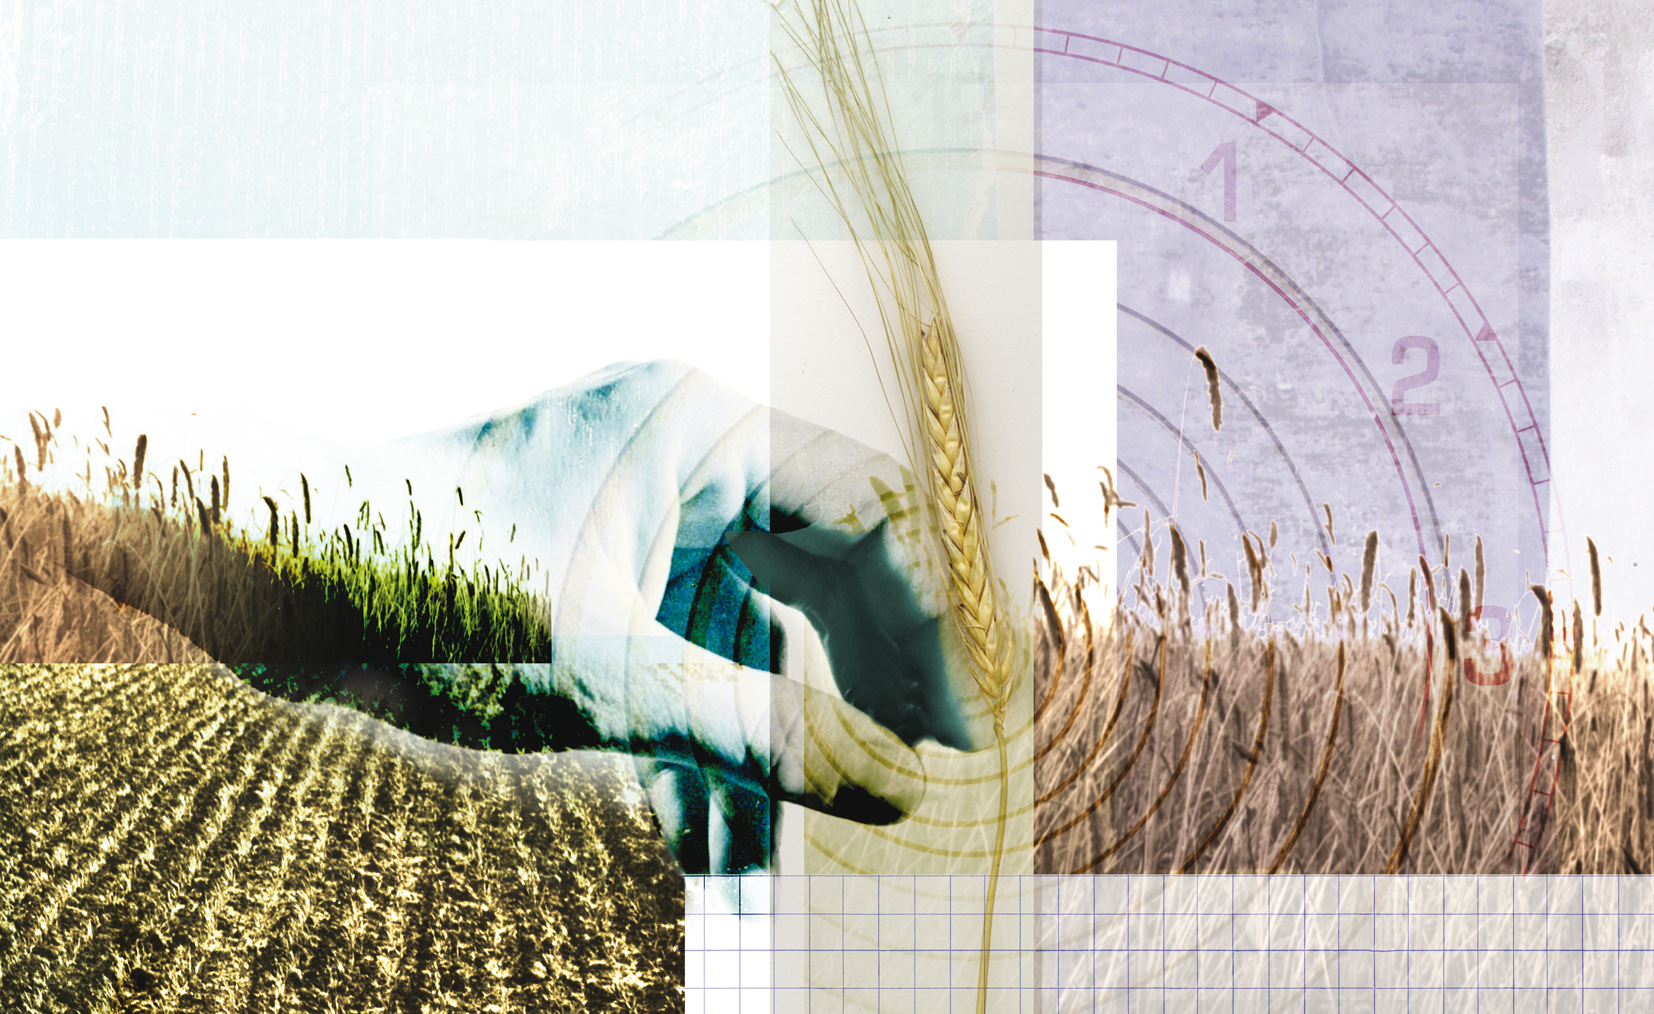 Harvest Bread Agriculture Feeding the World Ecology